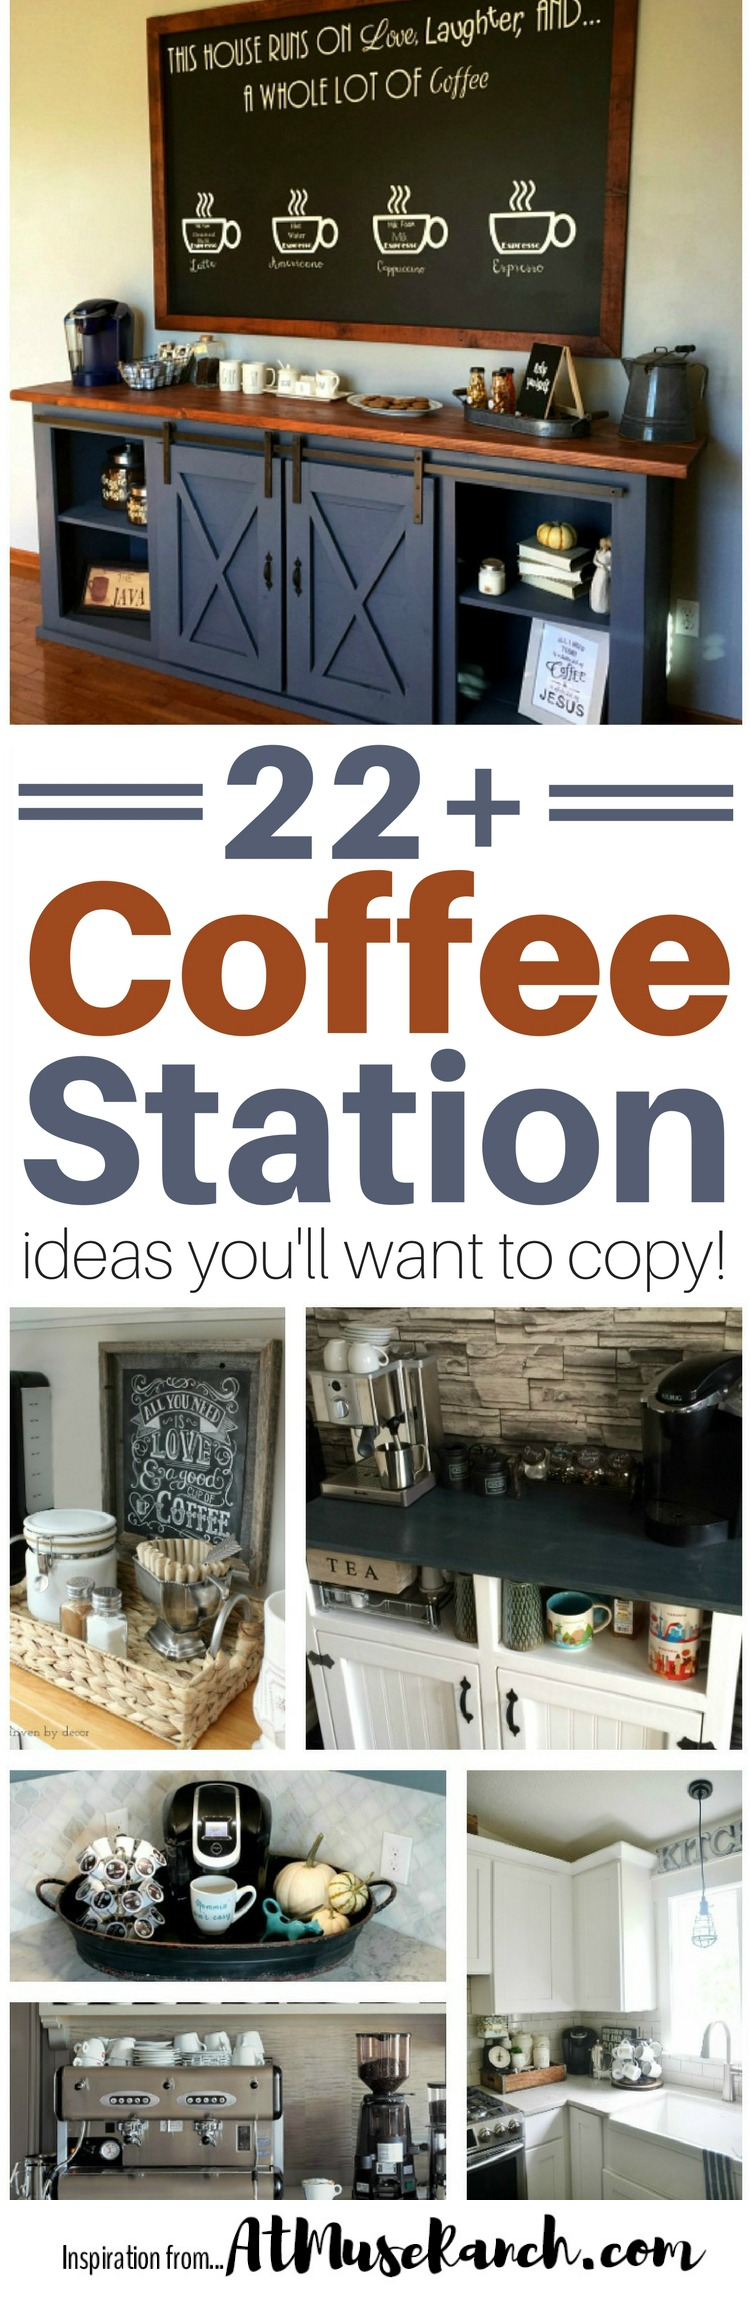 22 Coffee Station Ideas | You'll Be Inspired to Copy - AT ...